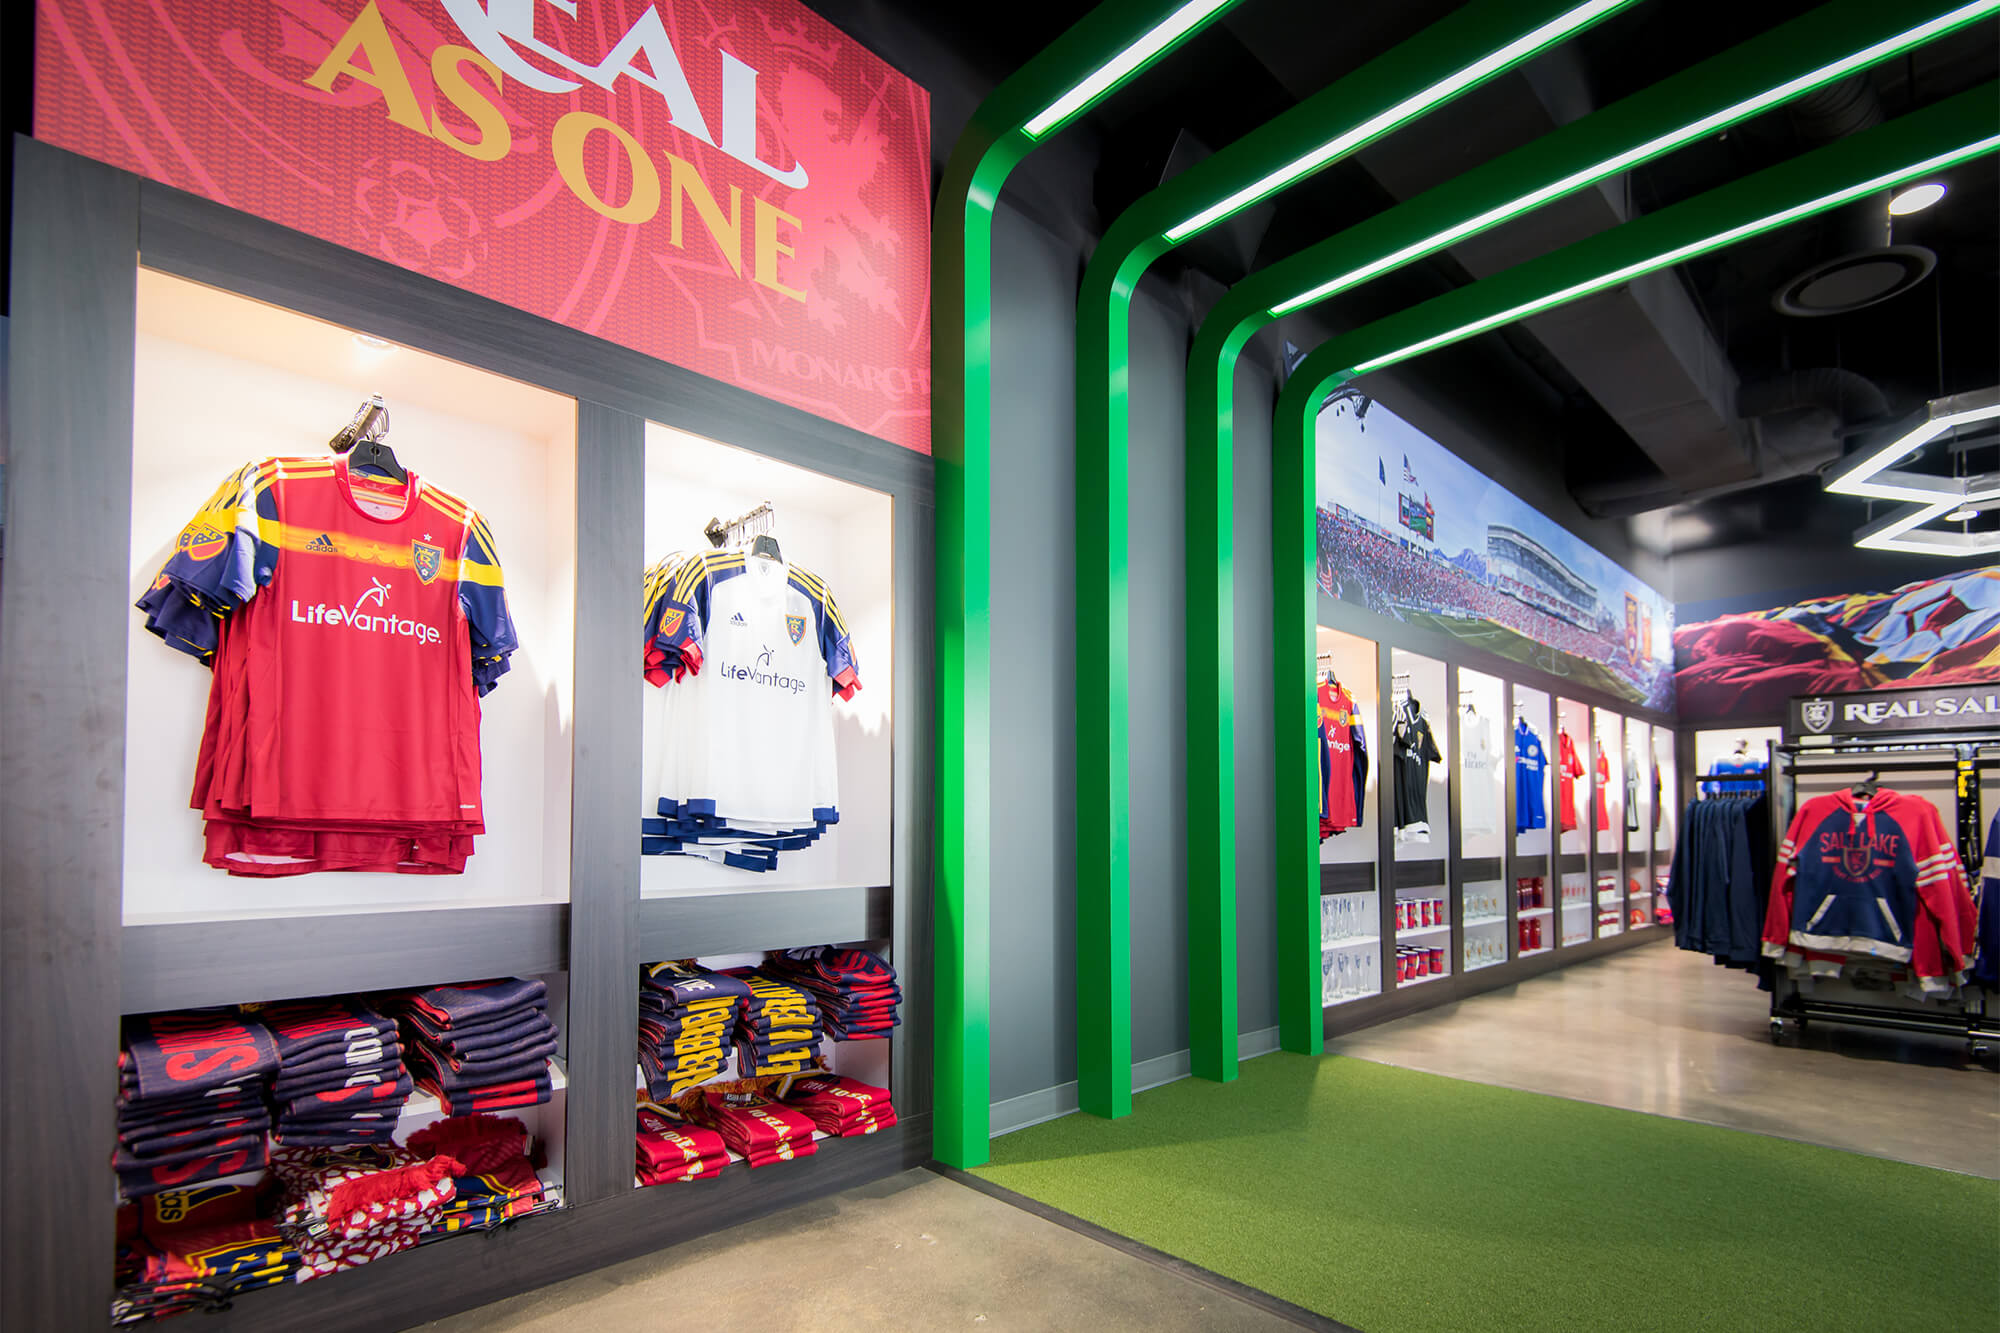 competitive price 95c9a f54a5 RSL Team Store - Beecher Walker Architects